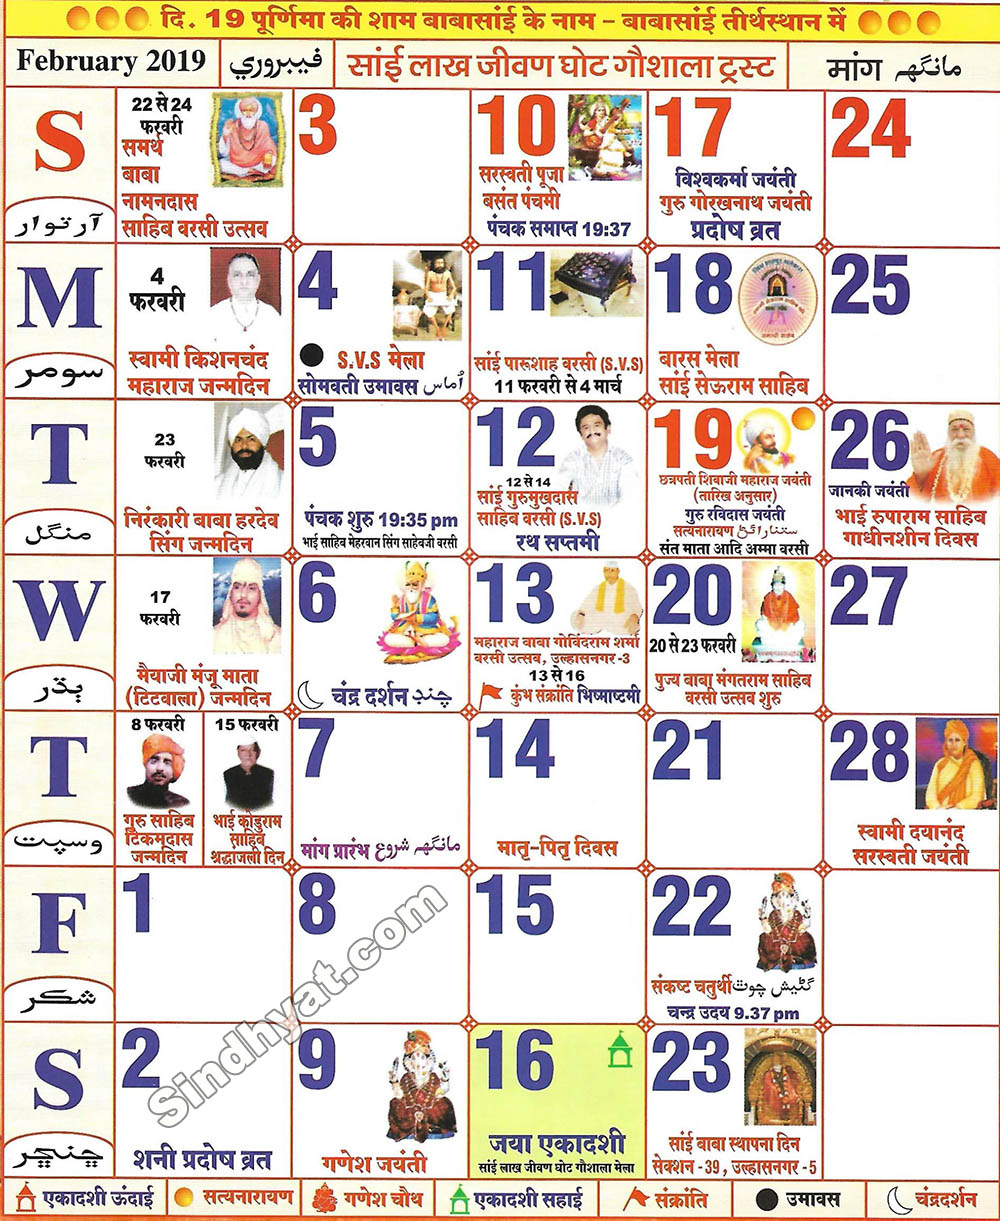 Sindhi Calendar for the month of February, 2019